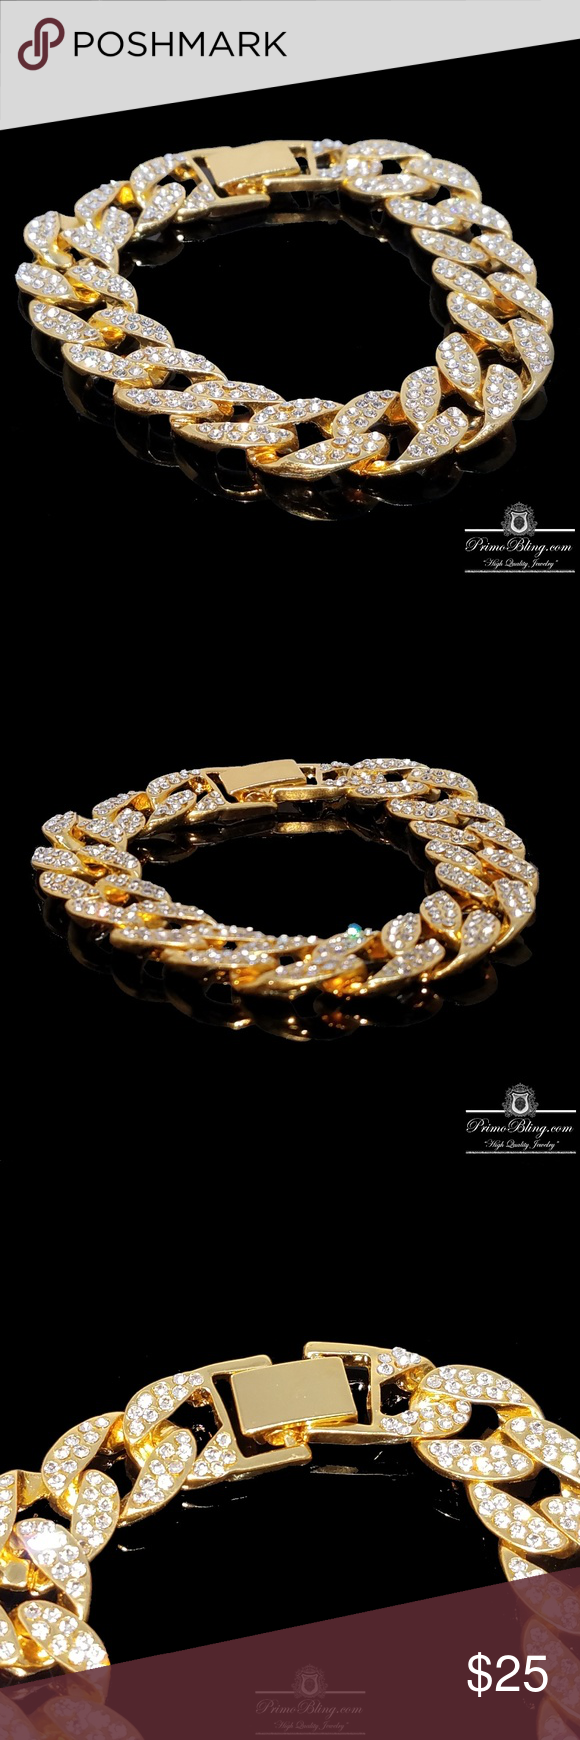 K gold plated iced out miami cuban bracelet nwt my posh picks